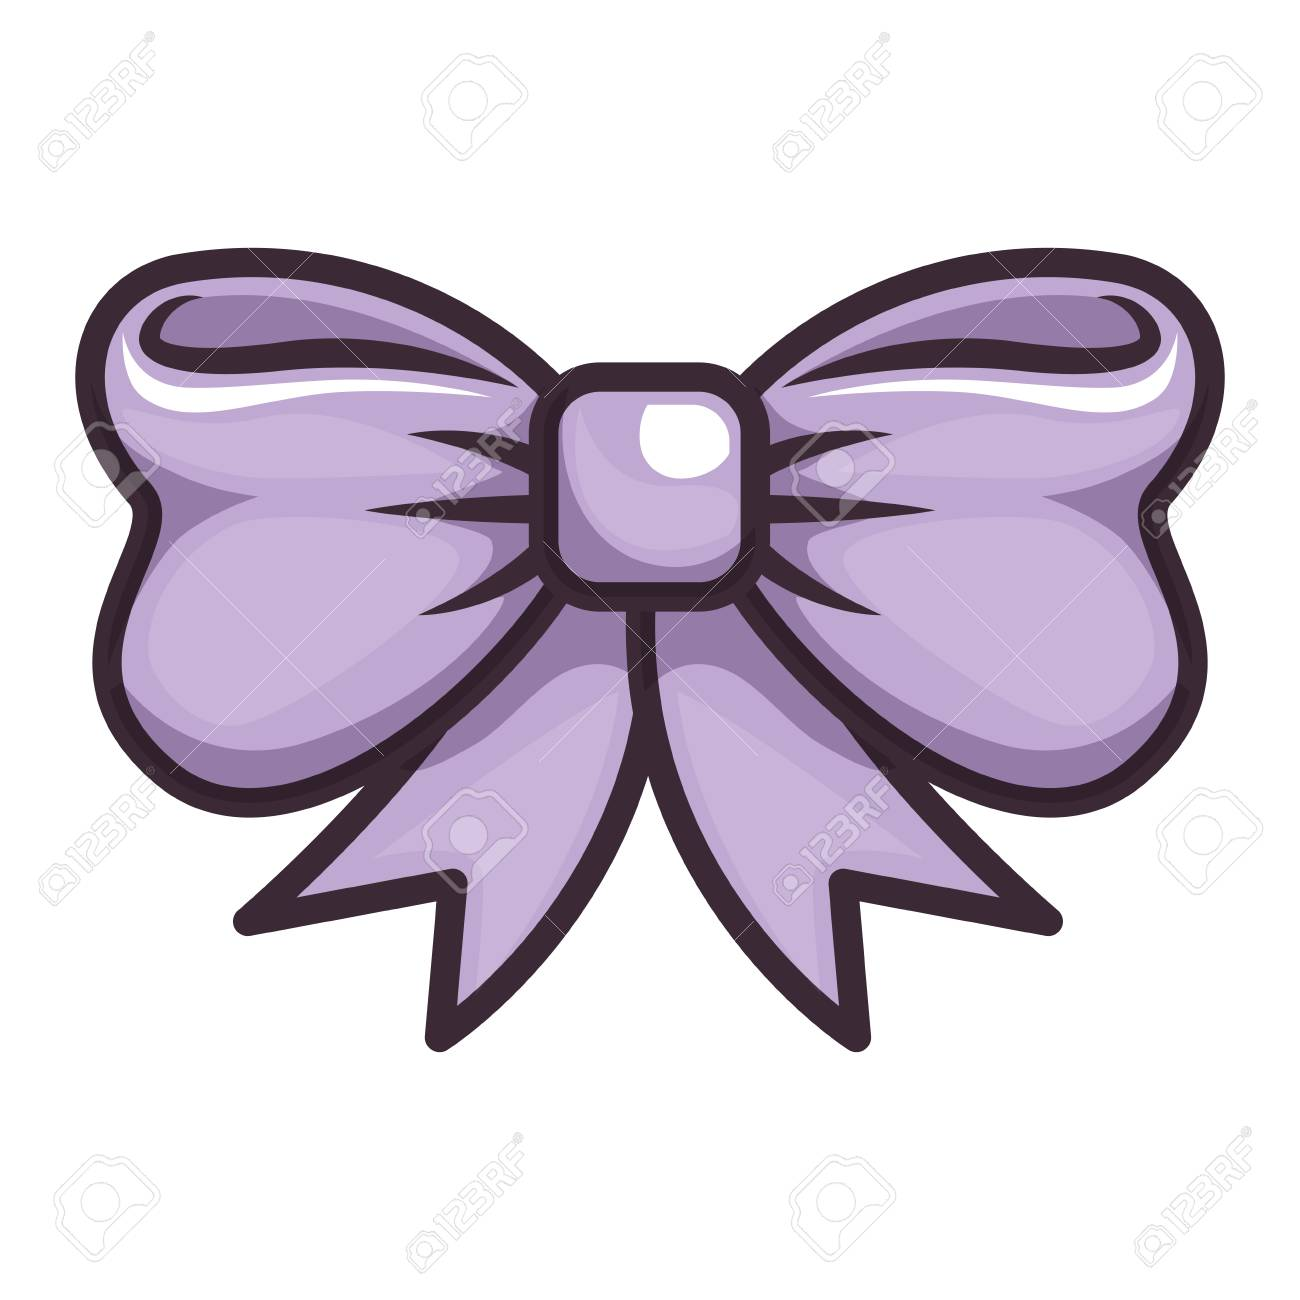 Isolated Cute Bow Icon Vector Illustration Graphic Design Royalty Free Cliparts Vectors And Stock Illustration Image 80726389